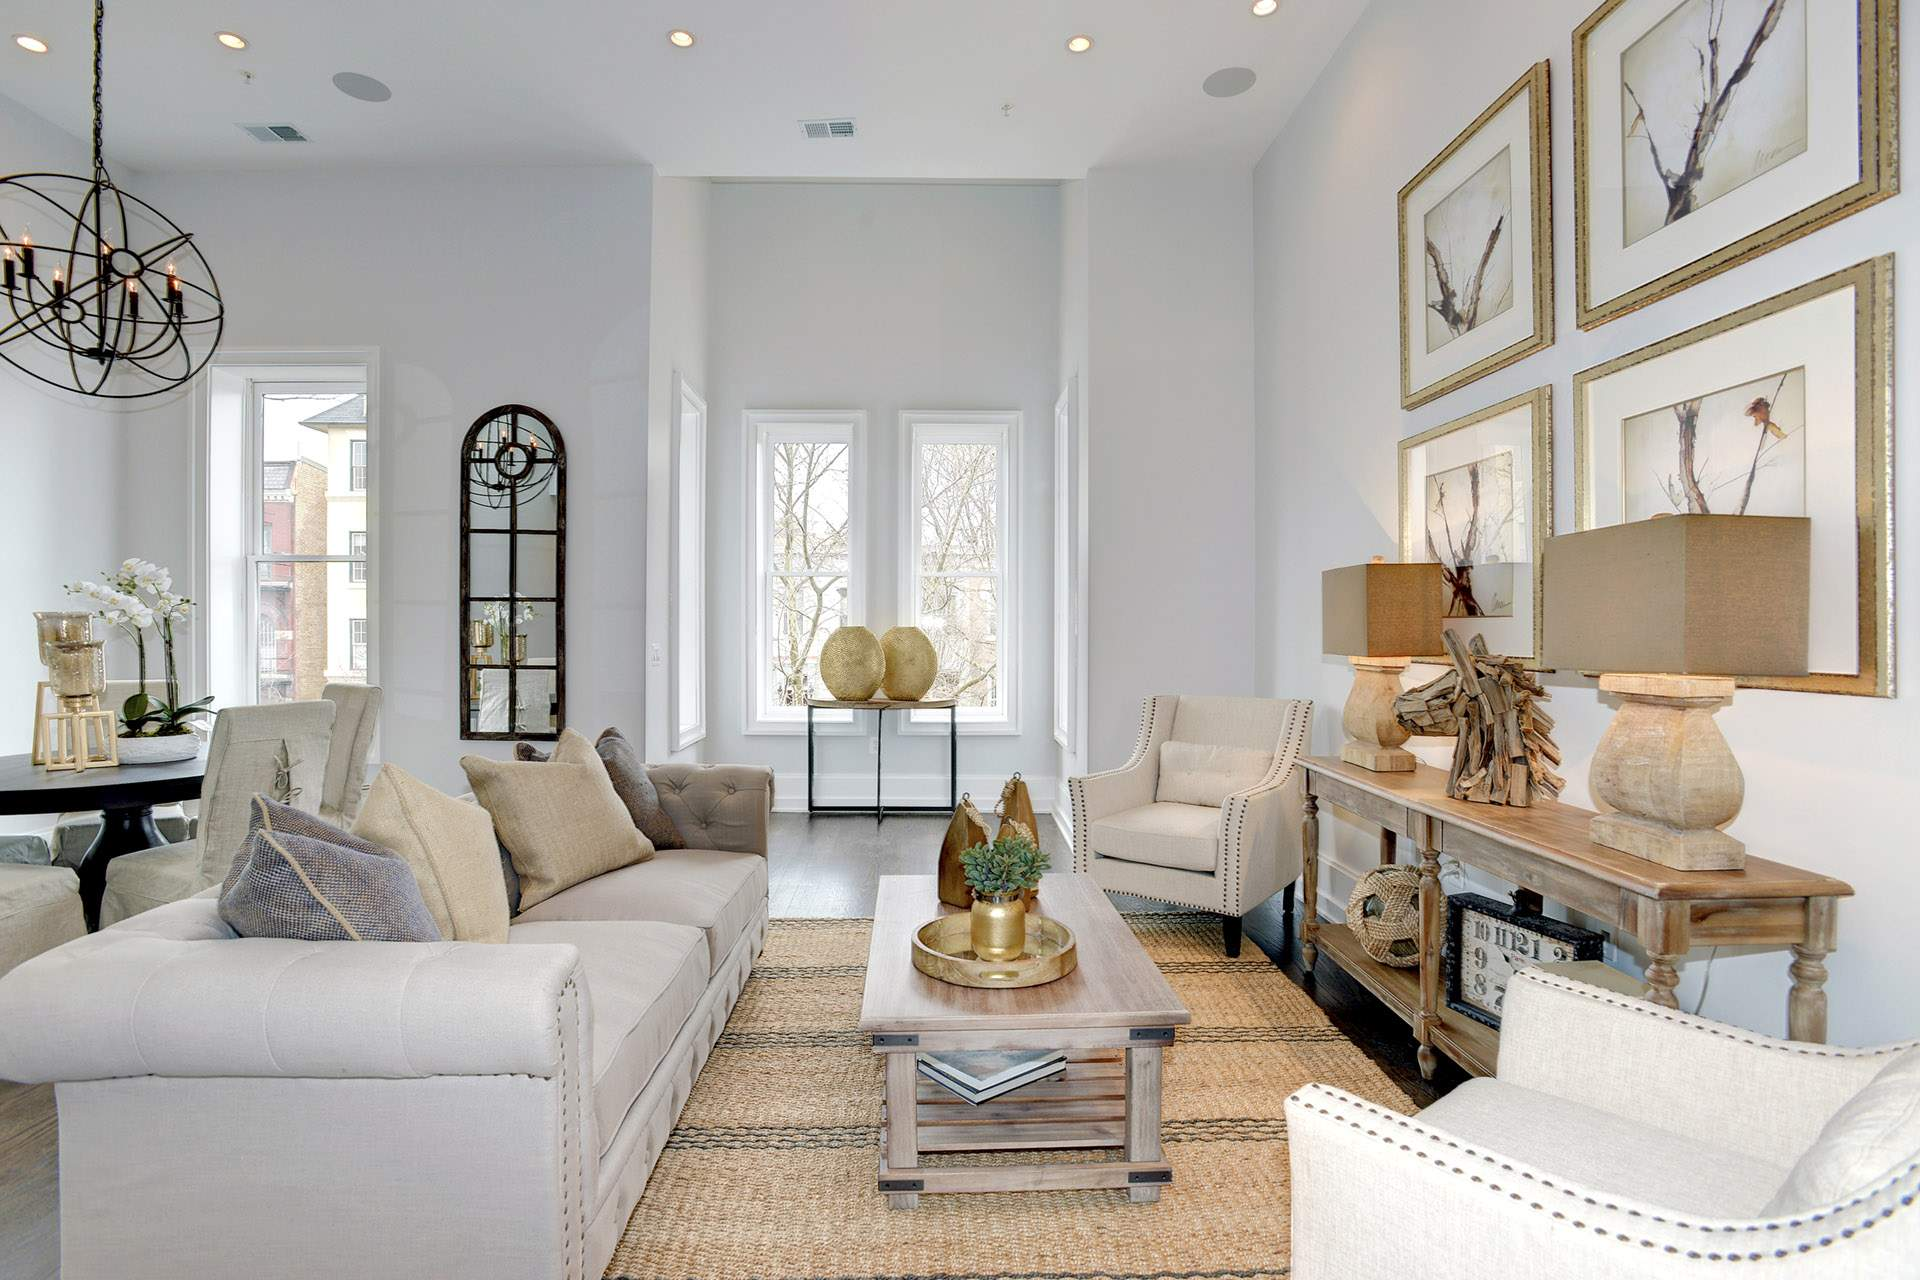 Residential Commercial Interior Design Services Washington D C Hudson Crane